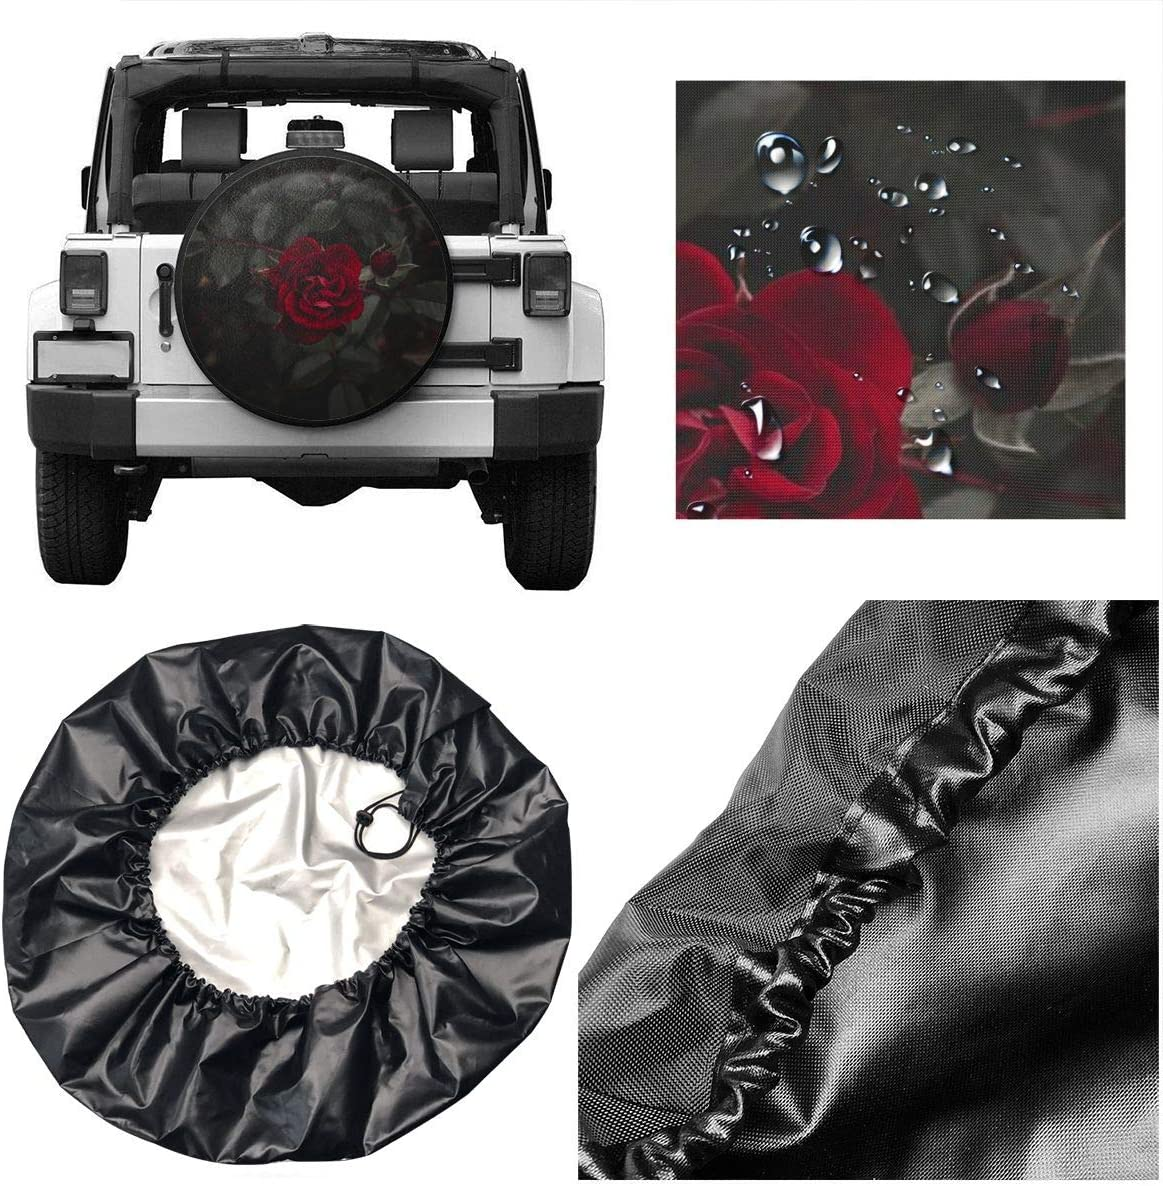 CHILL/·TEK Spare Tire Cover Rose Red Flowers Wheel Cover Polyester Waterproof Rv Wheel Covers for Jeep Liberty Wrangler SUV Camper Travel Trailer Accessories